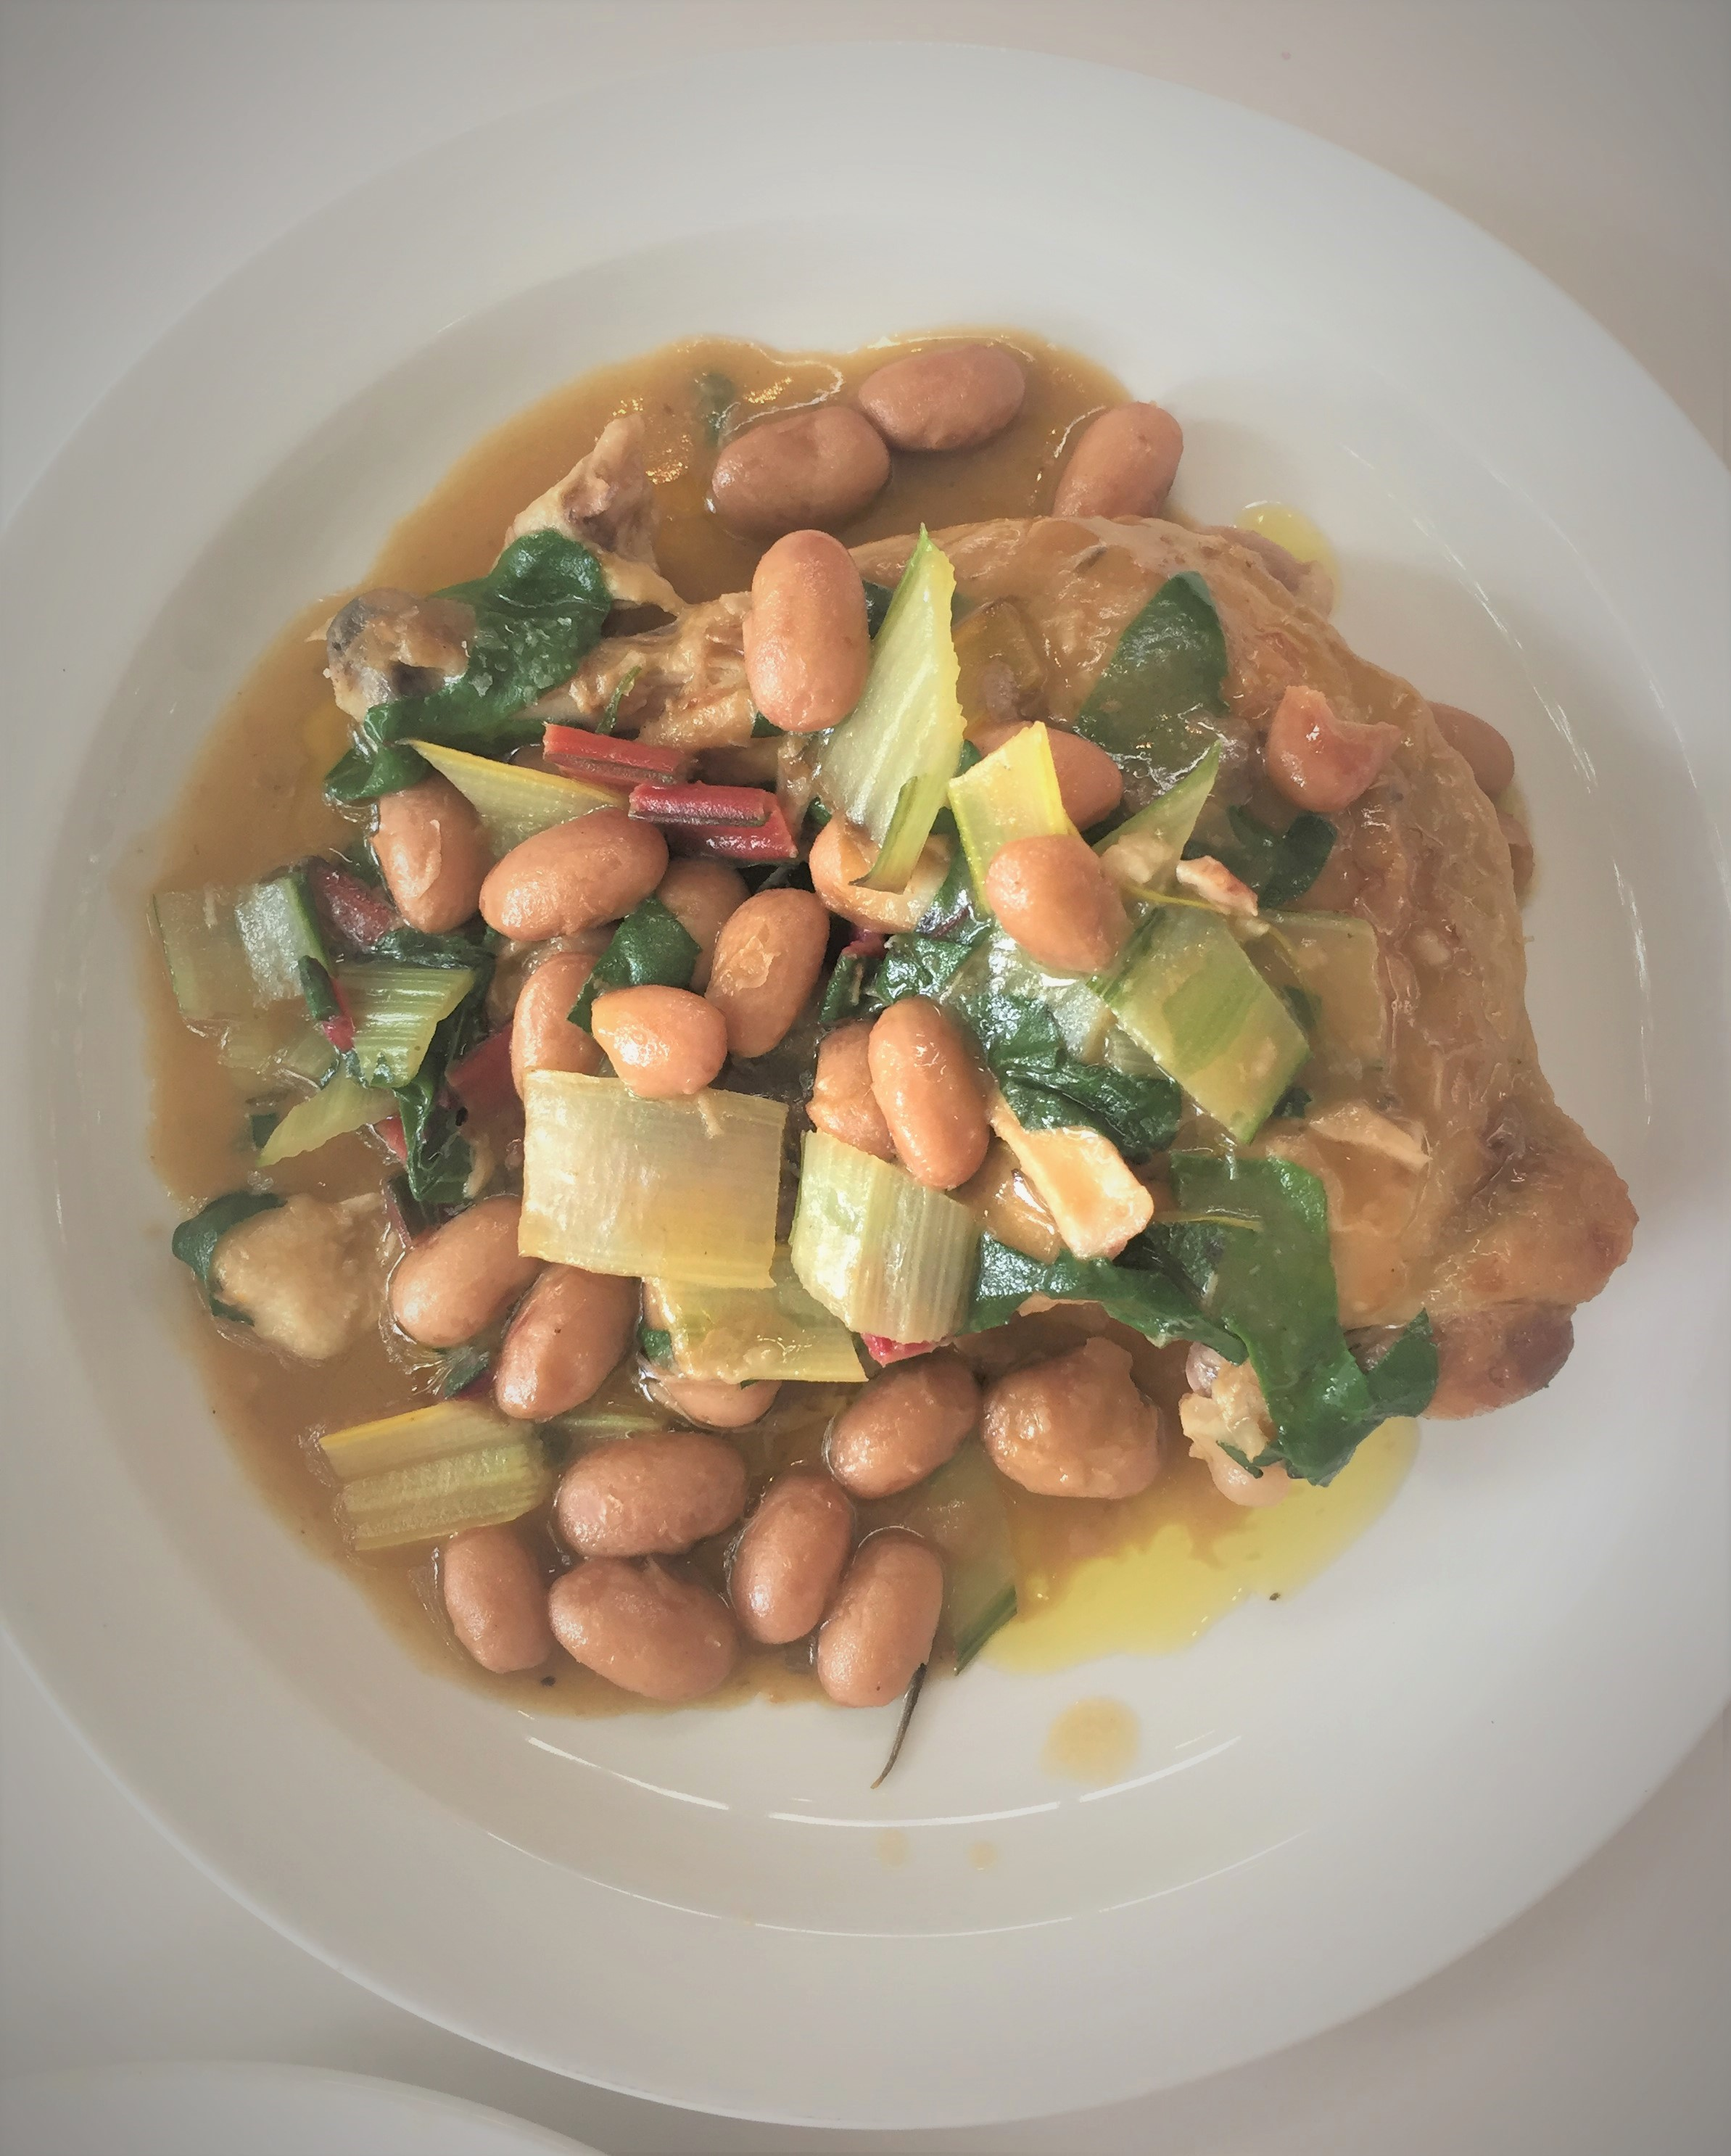 Chicken leg, rainbow chard and borlotti beans at the Garden Museum - kenningtonrunoff.com